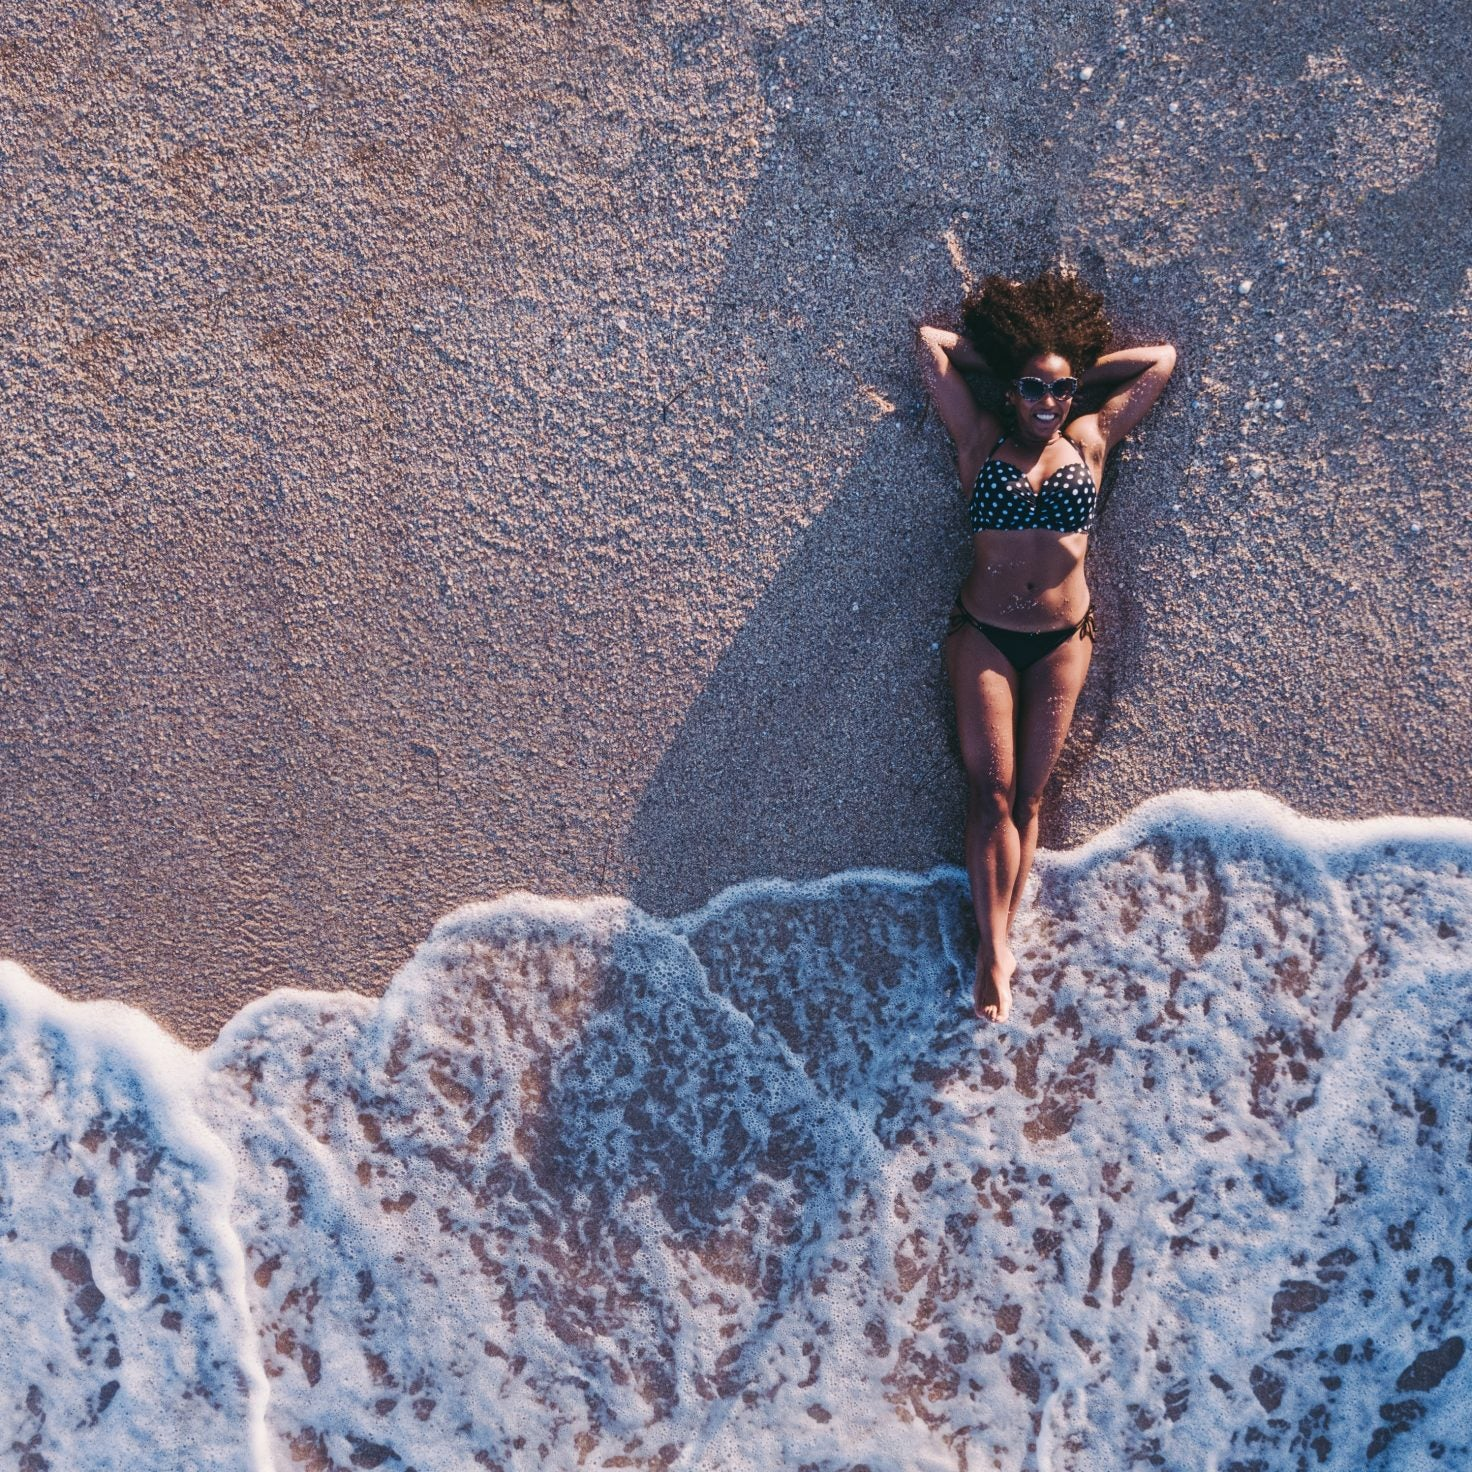 5 Indonesian Islands Black Women Should Visit That Are Not Bali